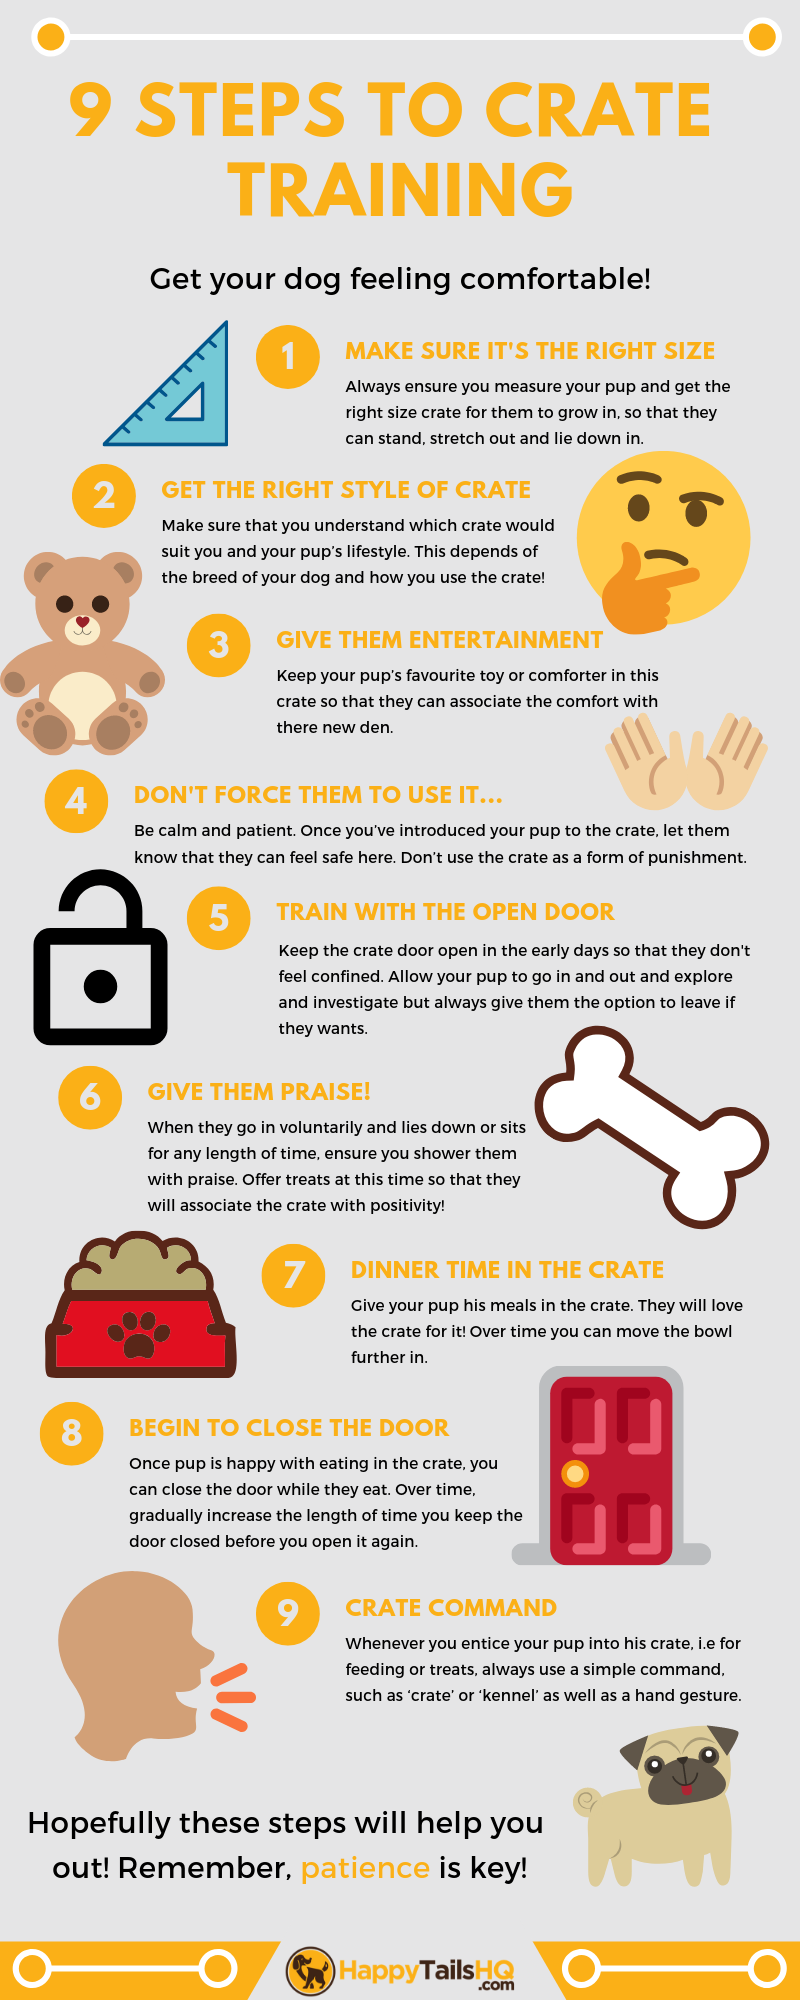 Here are 9 easy tips/ steps to crate training your dog! Make sure to check out our blog post for more info and find out which are the best dog crates for your dog!